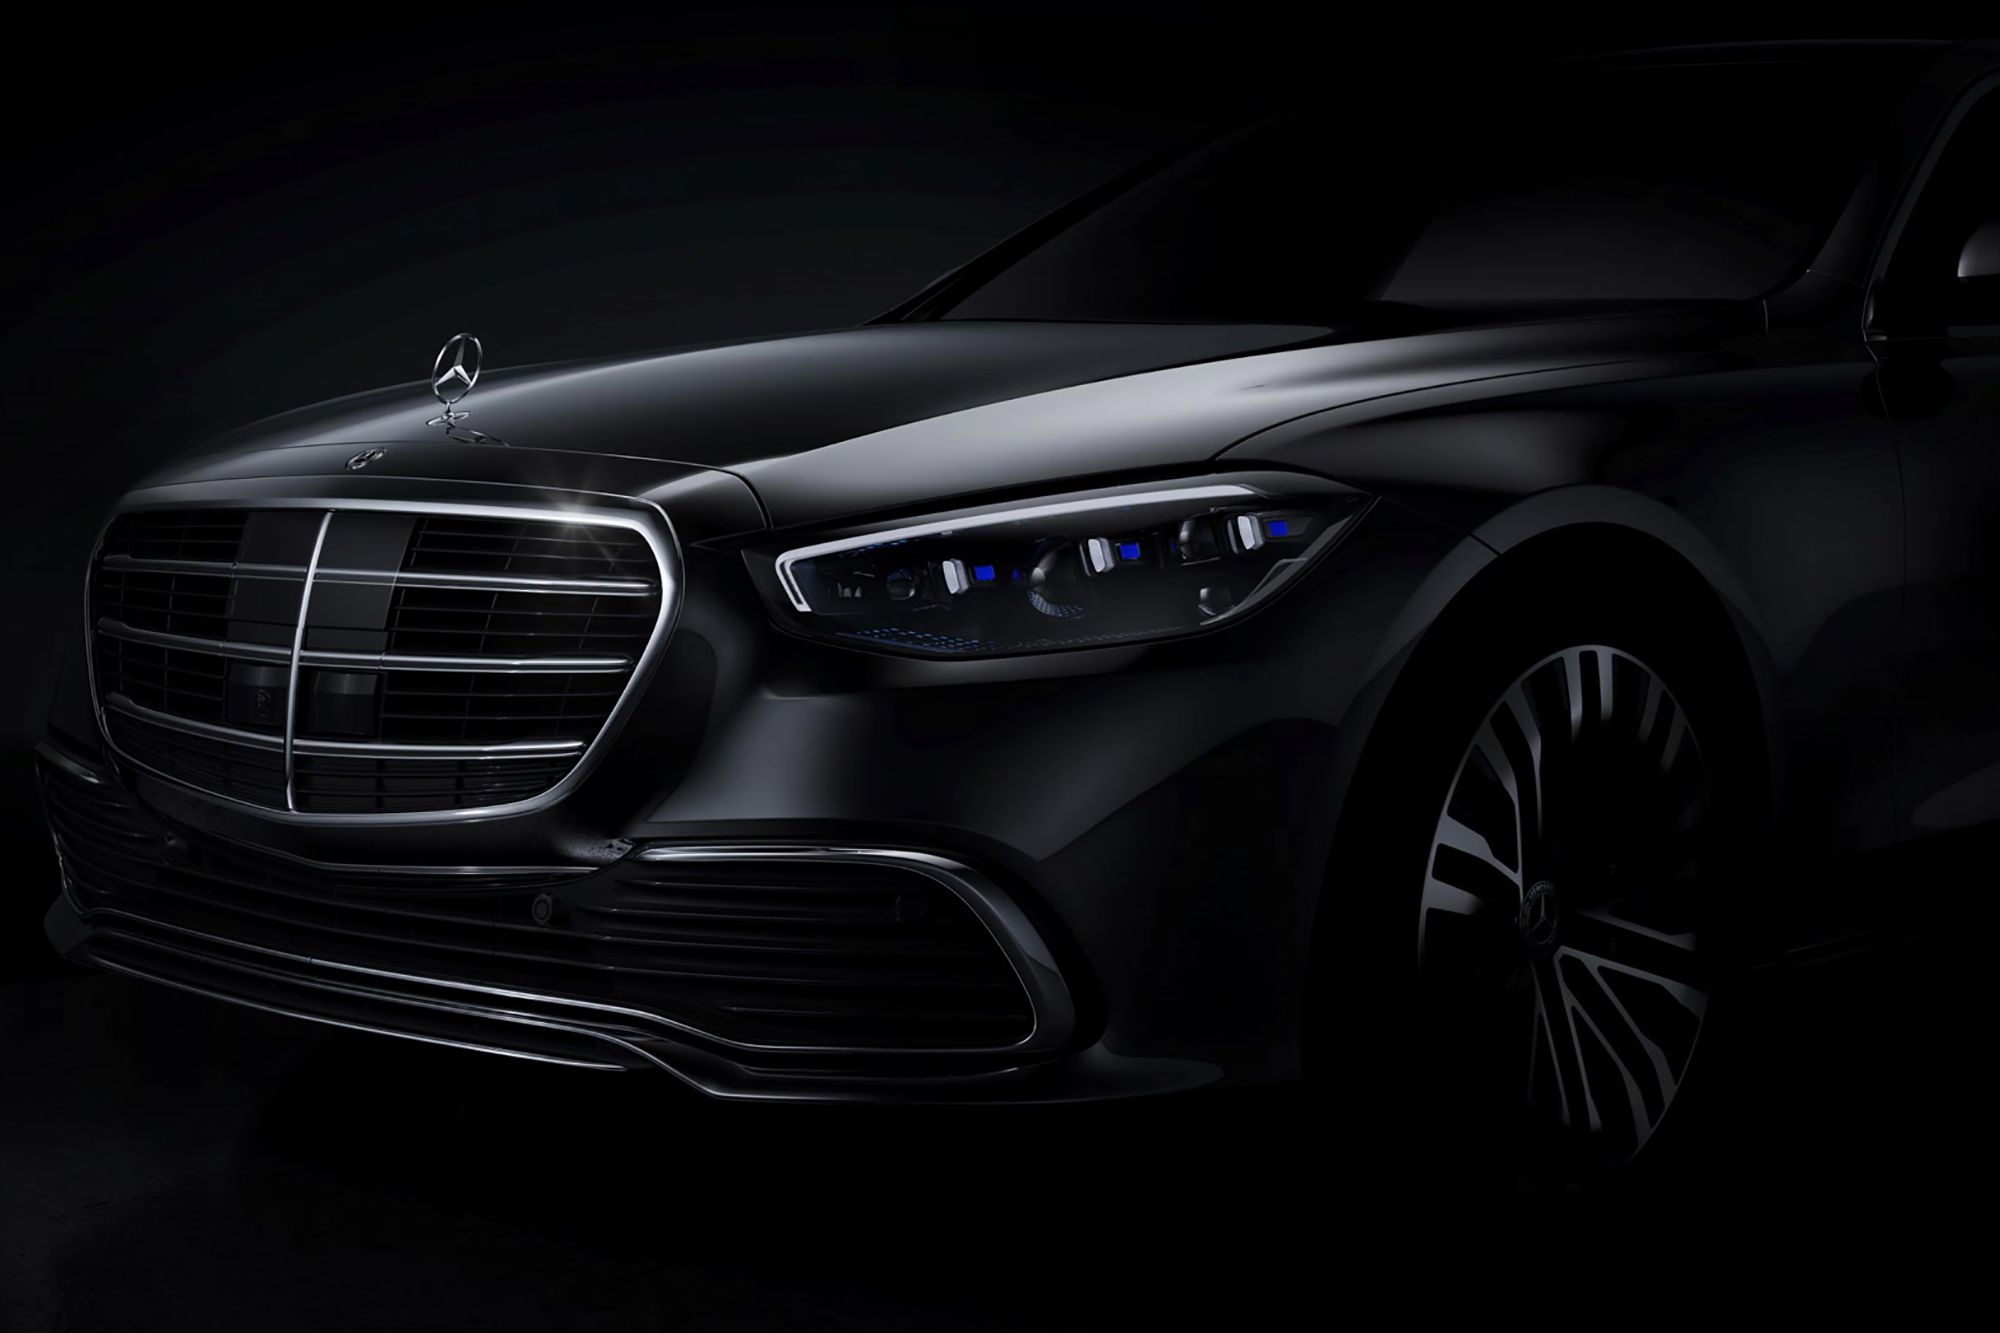 Next-Gen Mercedes-Benz S-Class Glimpse Mixes Traditional Styling With New